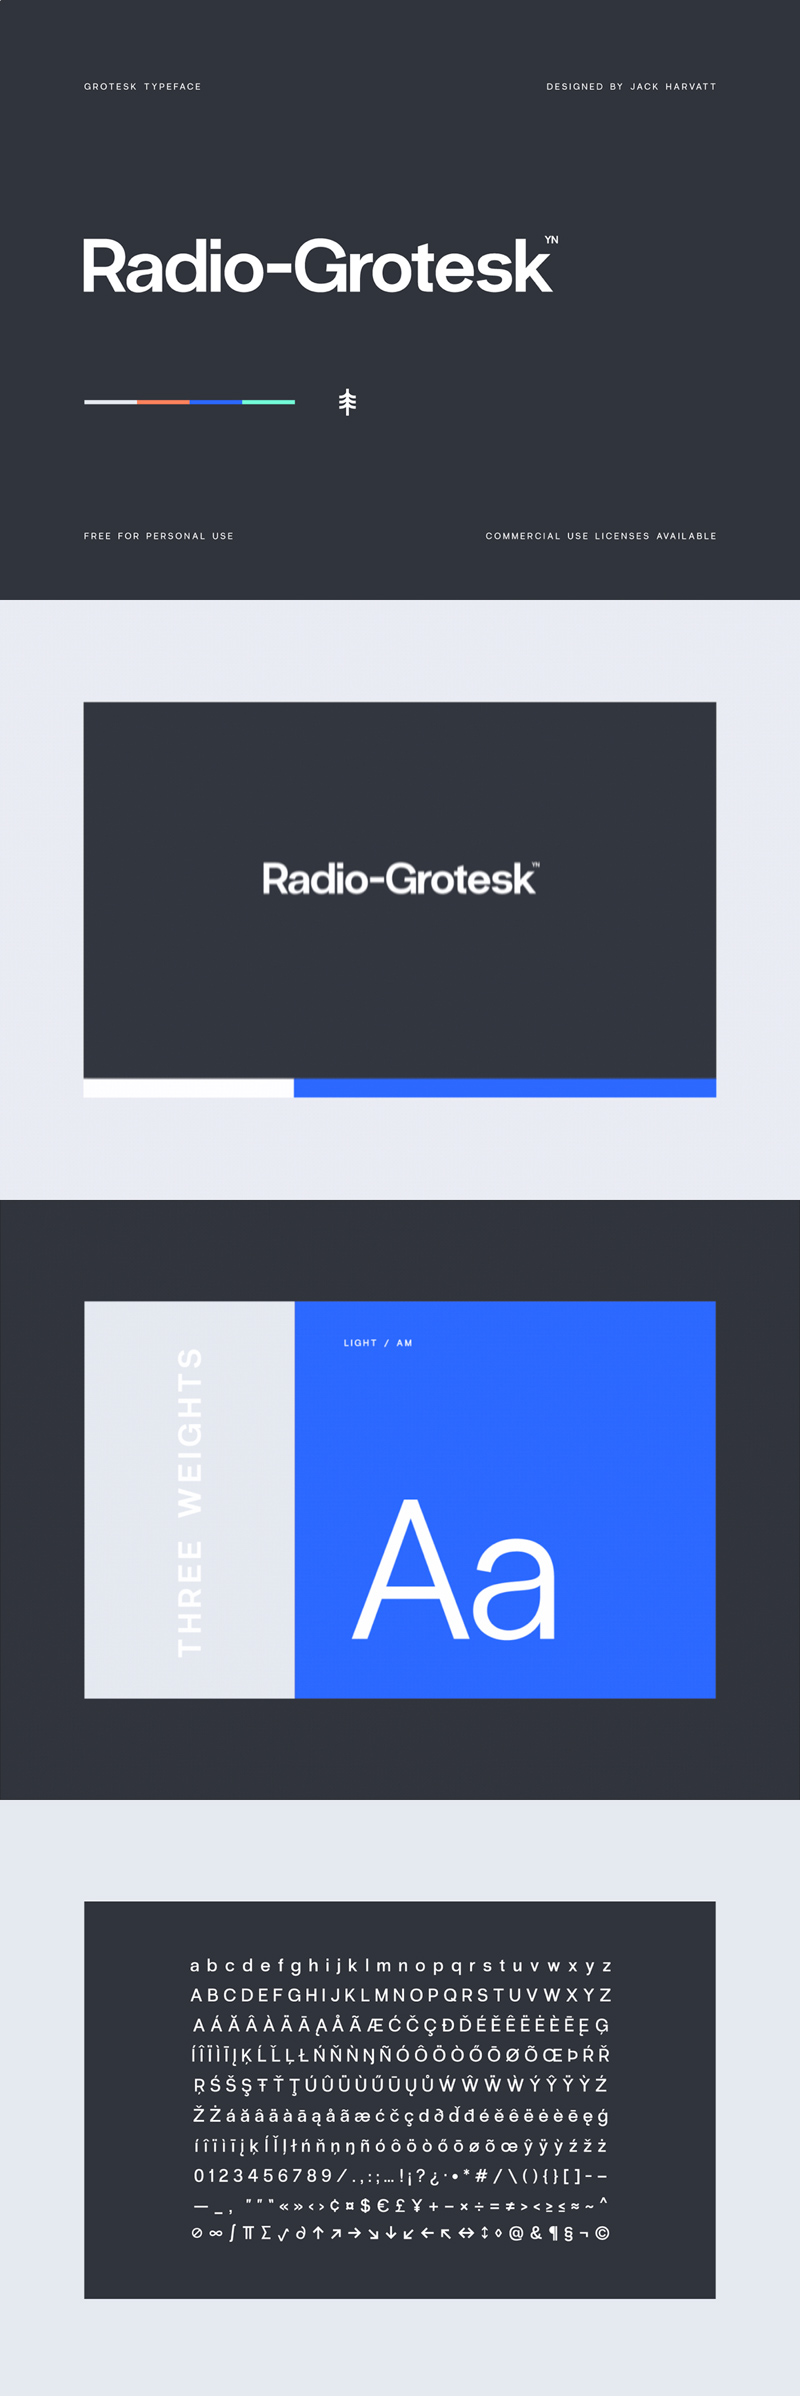 Radio-Grotesk Grotesk Font - Freebie Supply